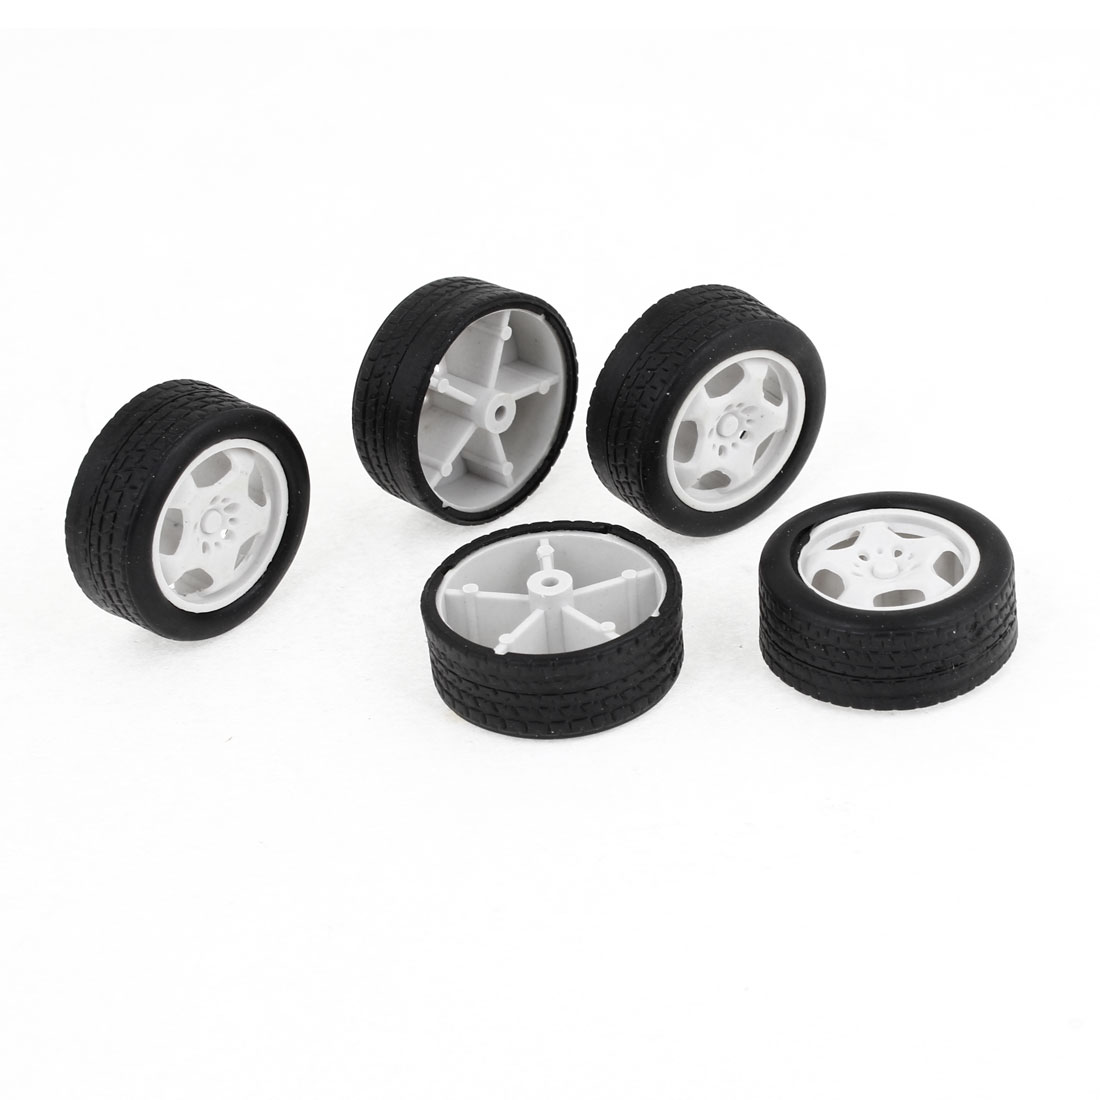 5 Pieces Repairing Part 34mm Dia Rubber Roll Plastic Core Toy Car Truck Wheels